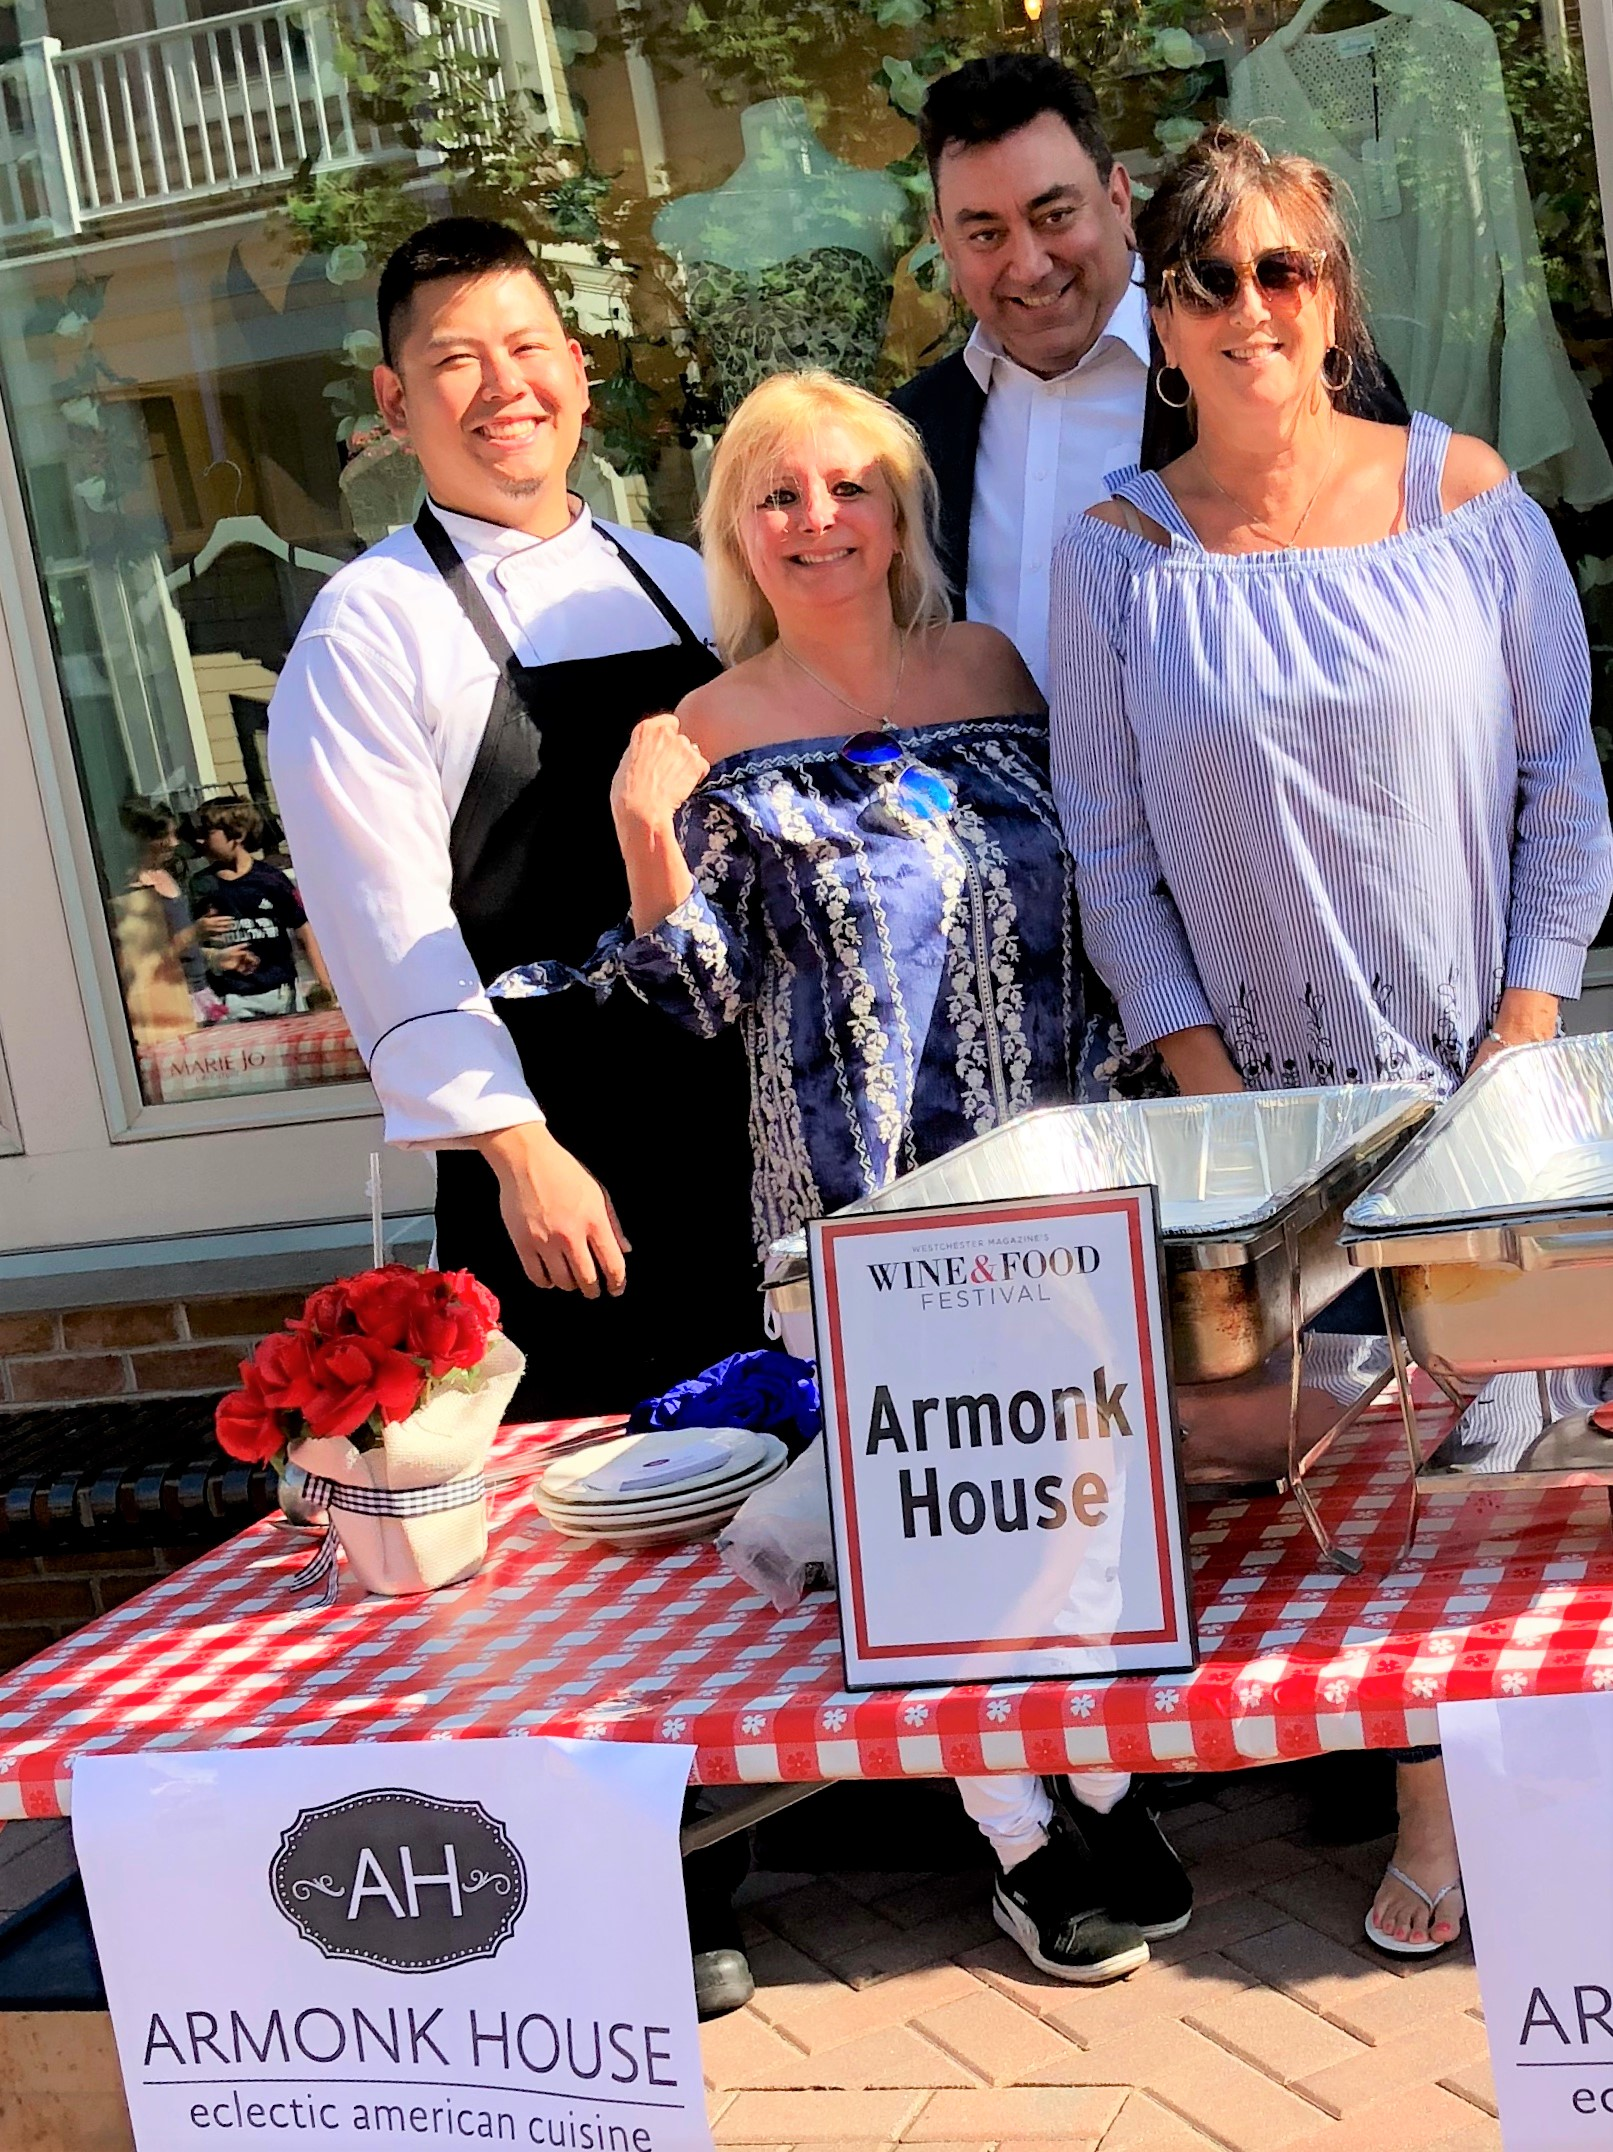 Armonk-House-Chili-Cookoff-.jpg